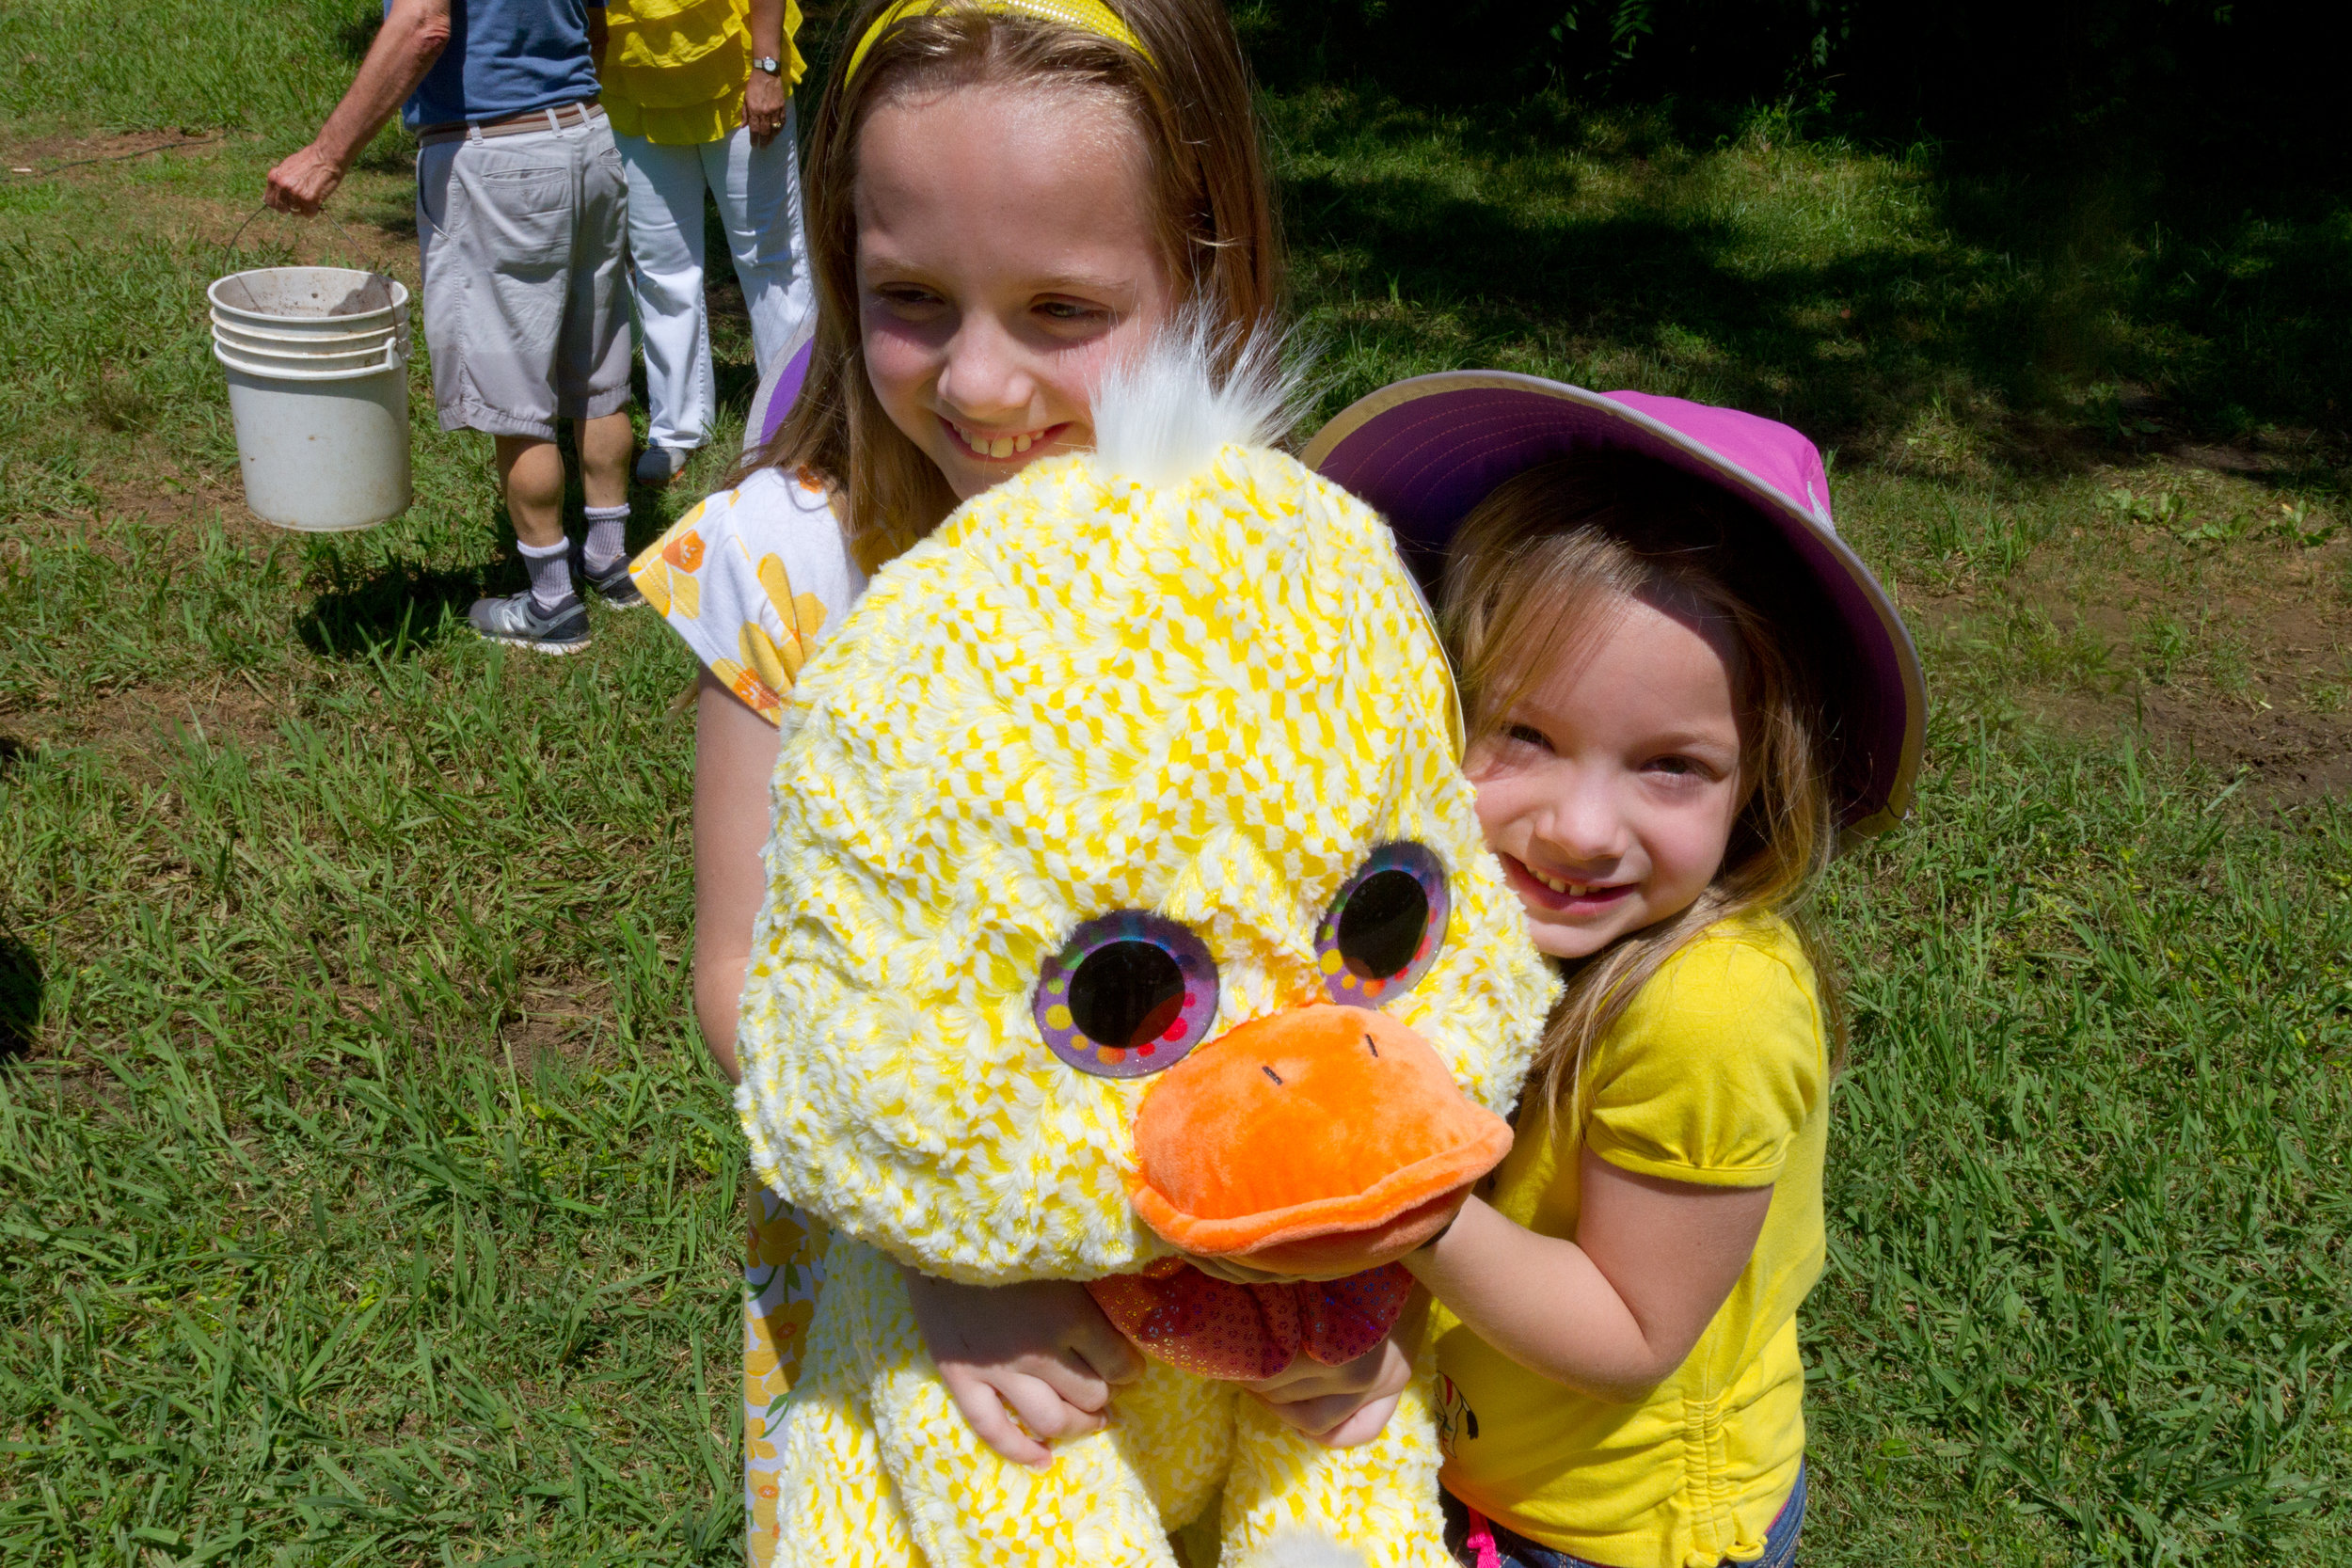 rubber-duck_020_35099055216_o.jpg